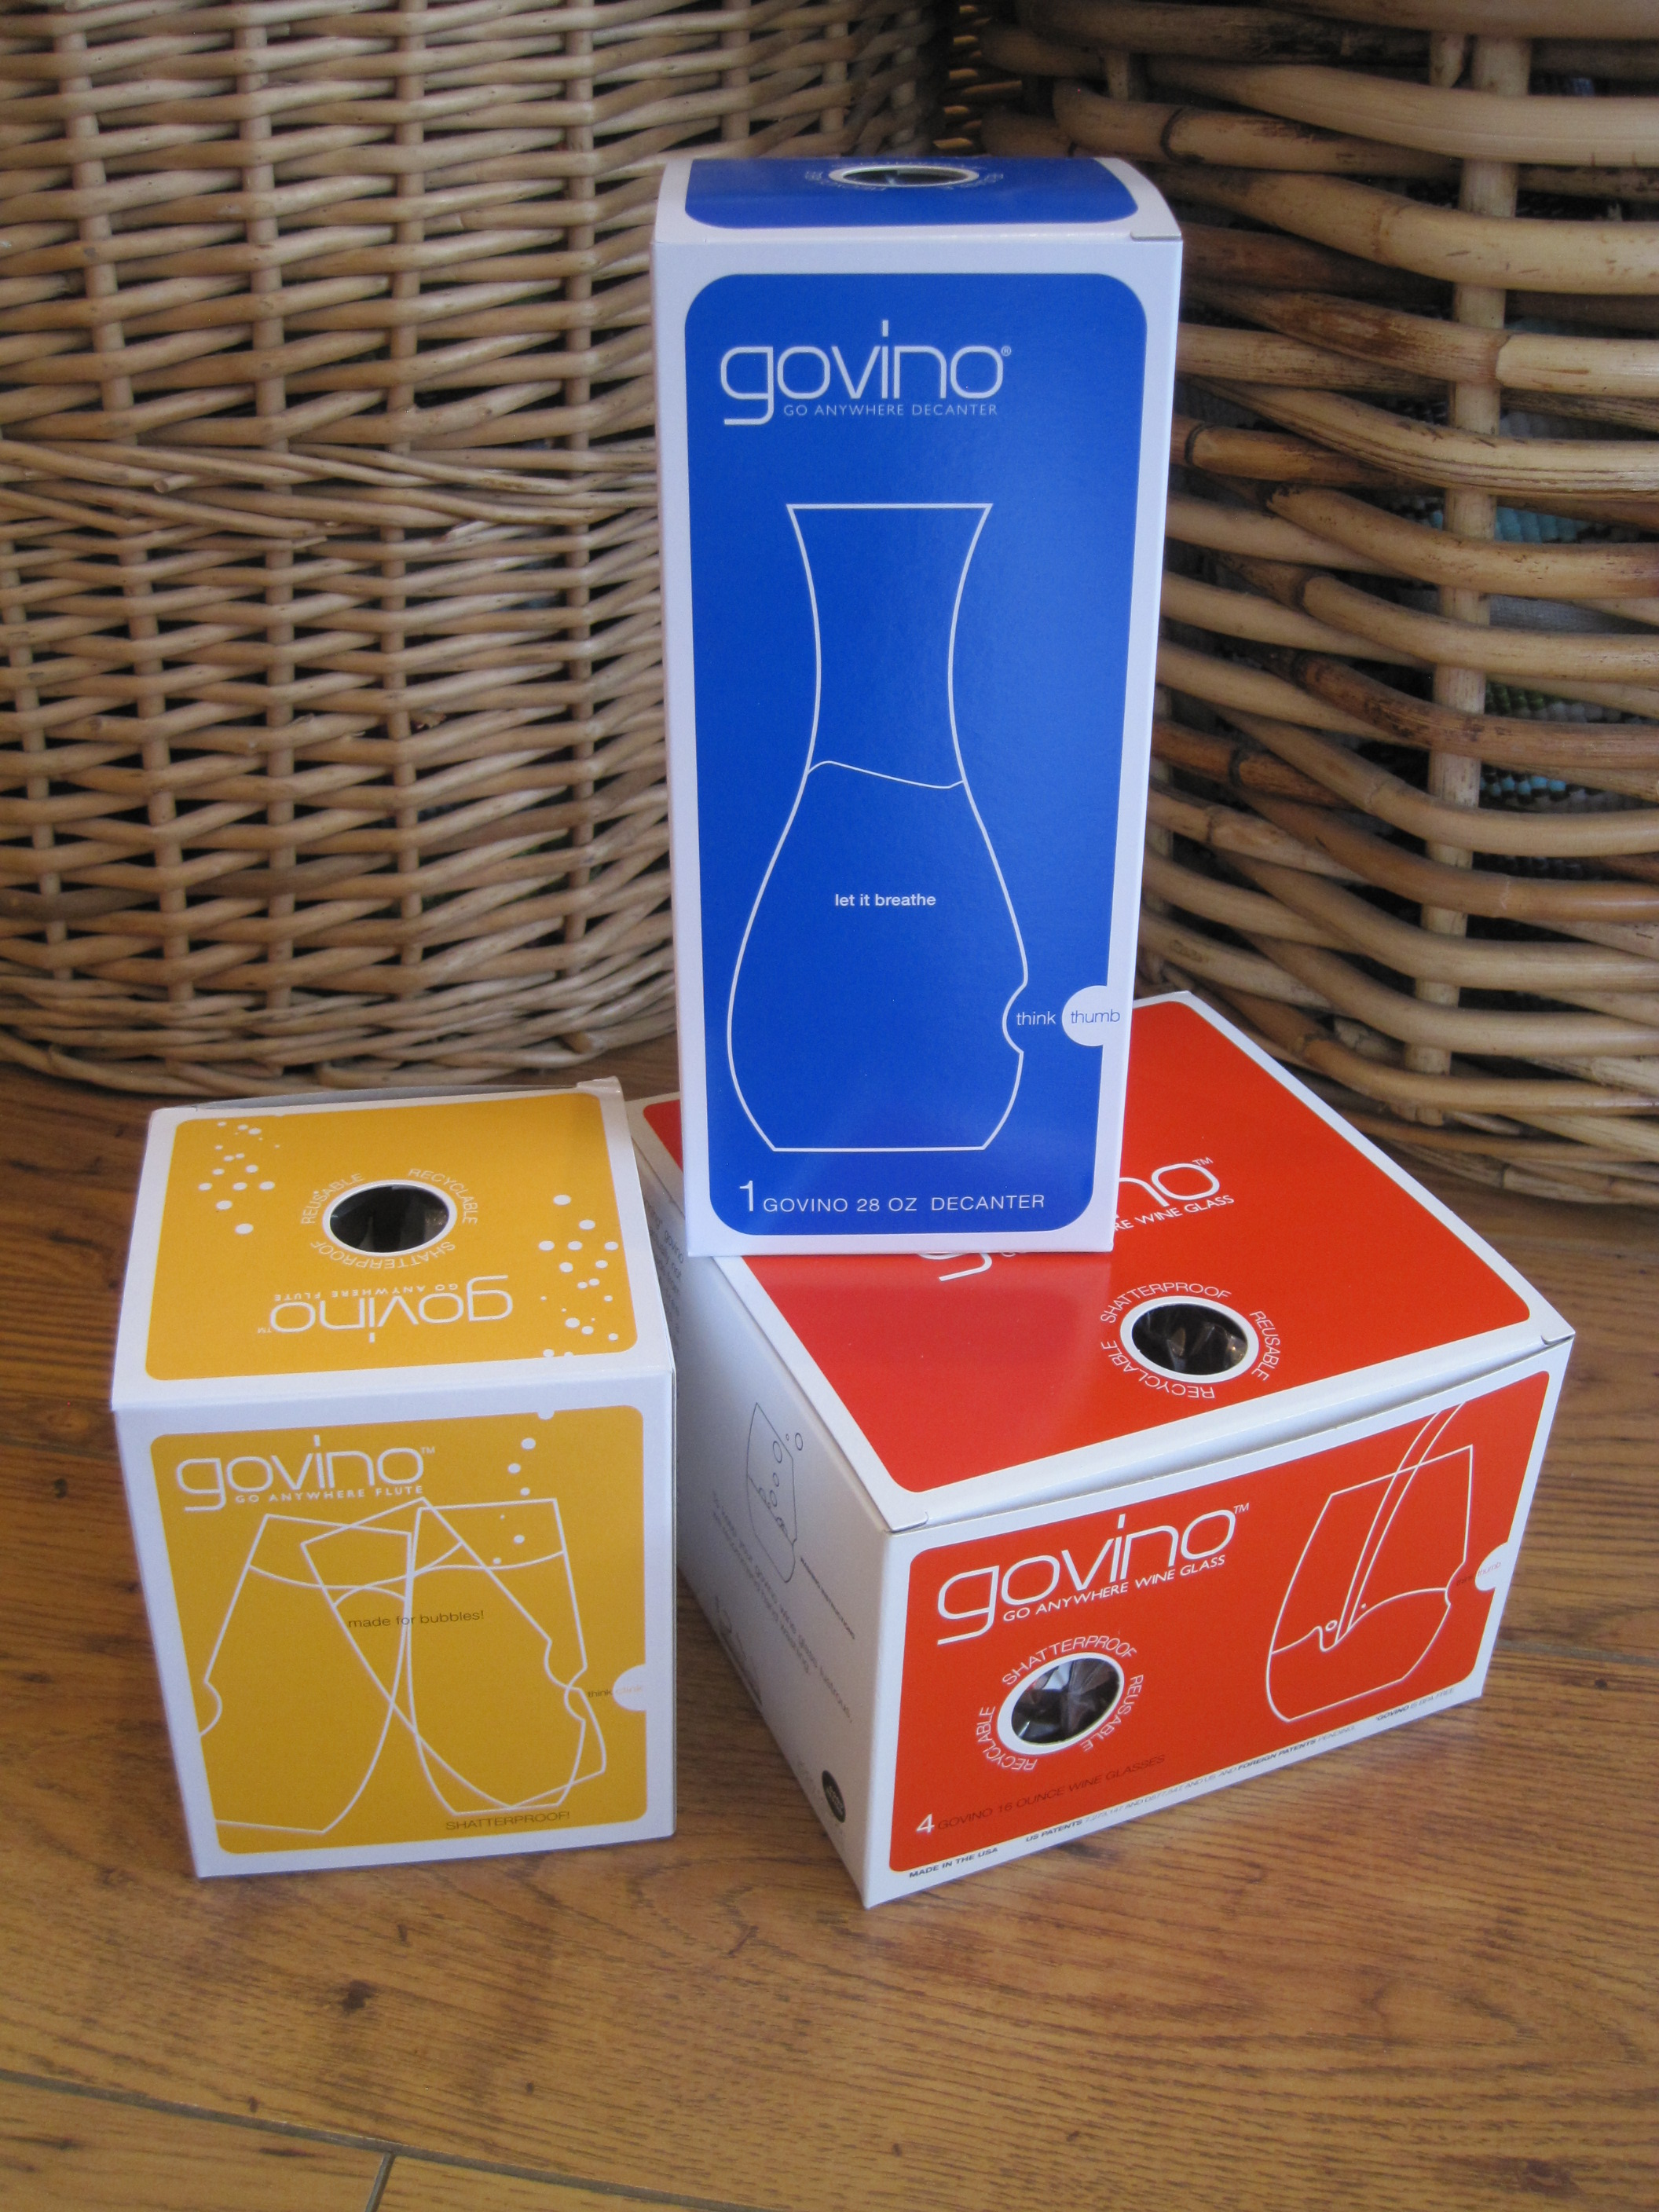 govino wine glasses, govino champagne glasses, govino decanter